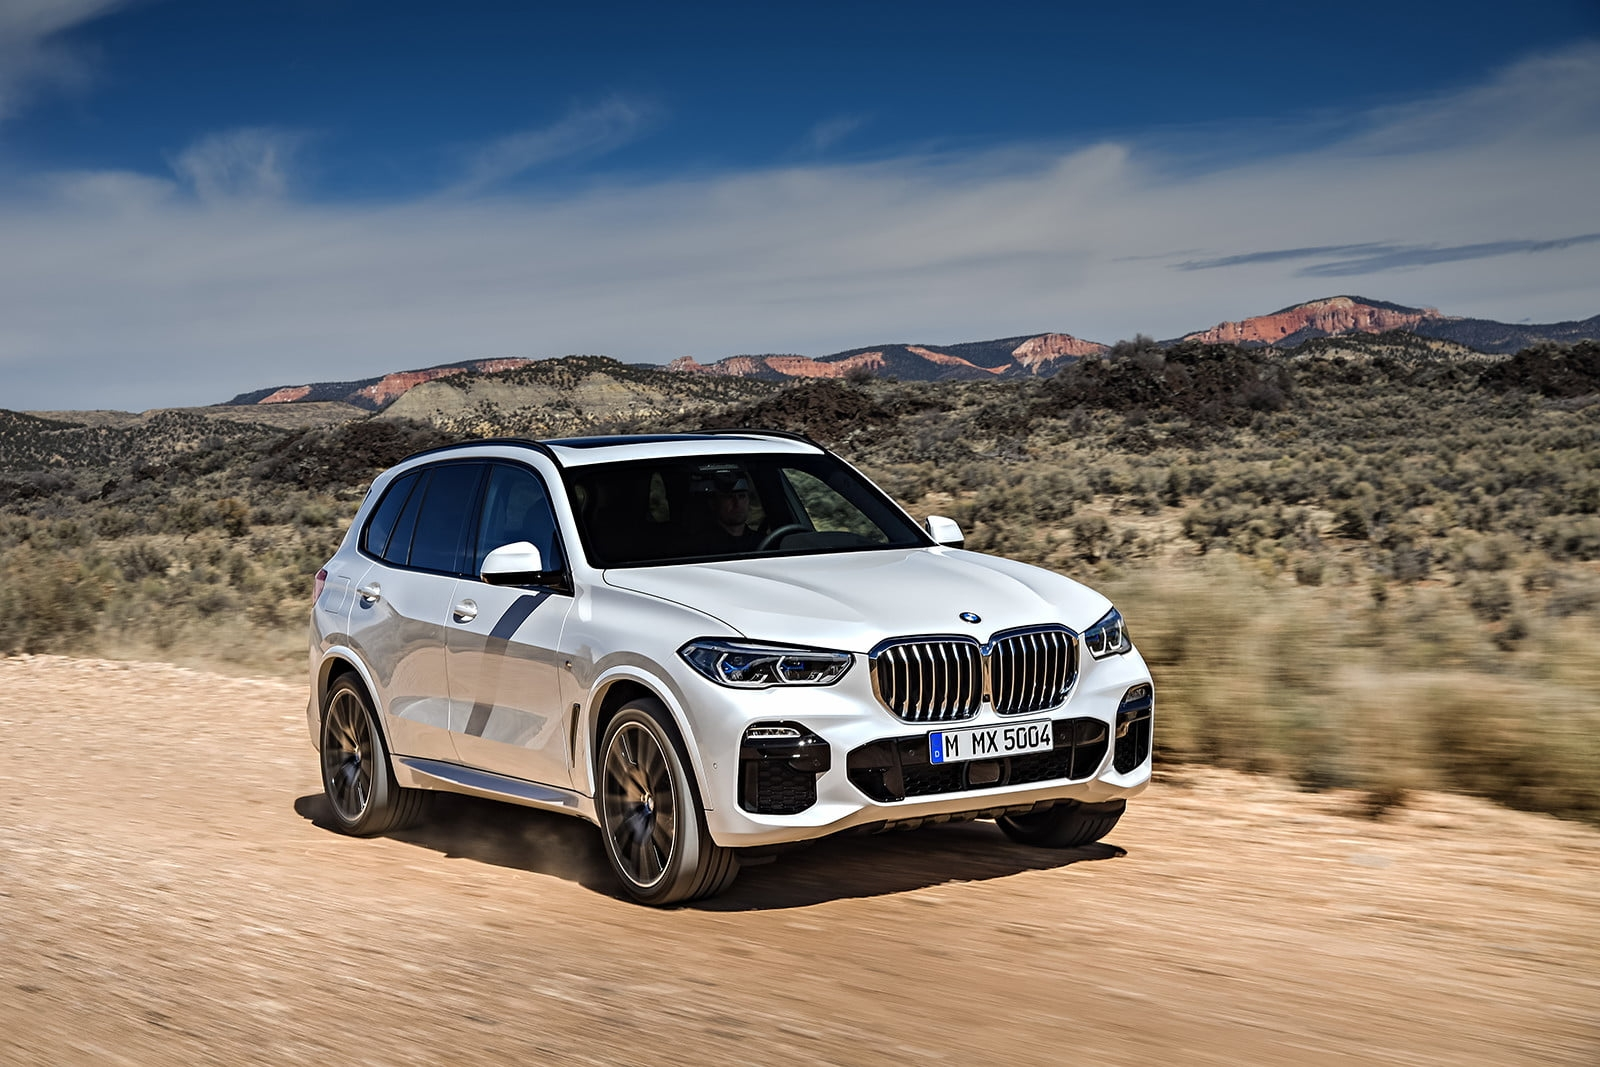 35 The Best Next Gen BMW X5 Suv Price